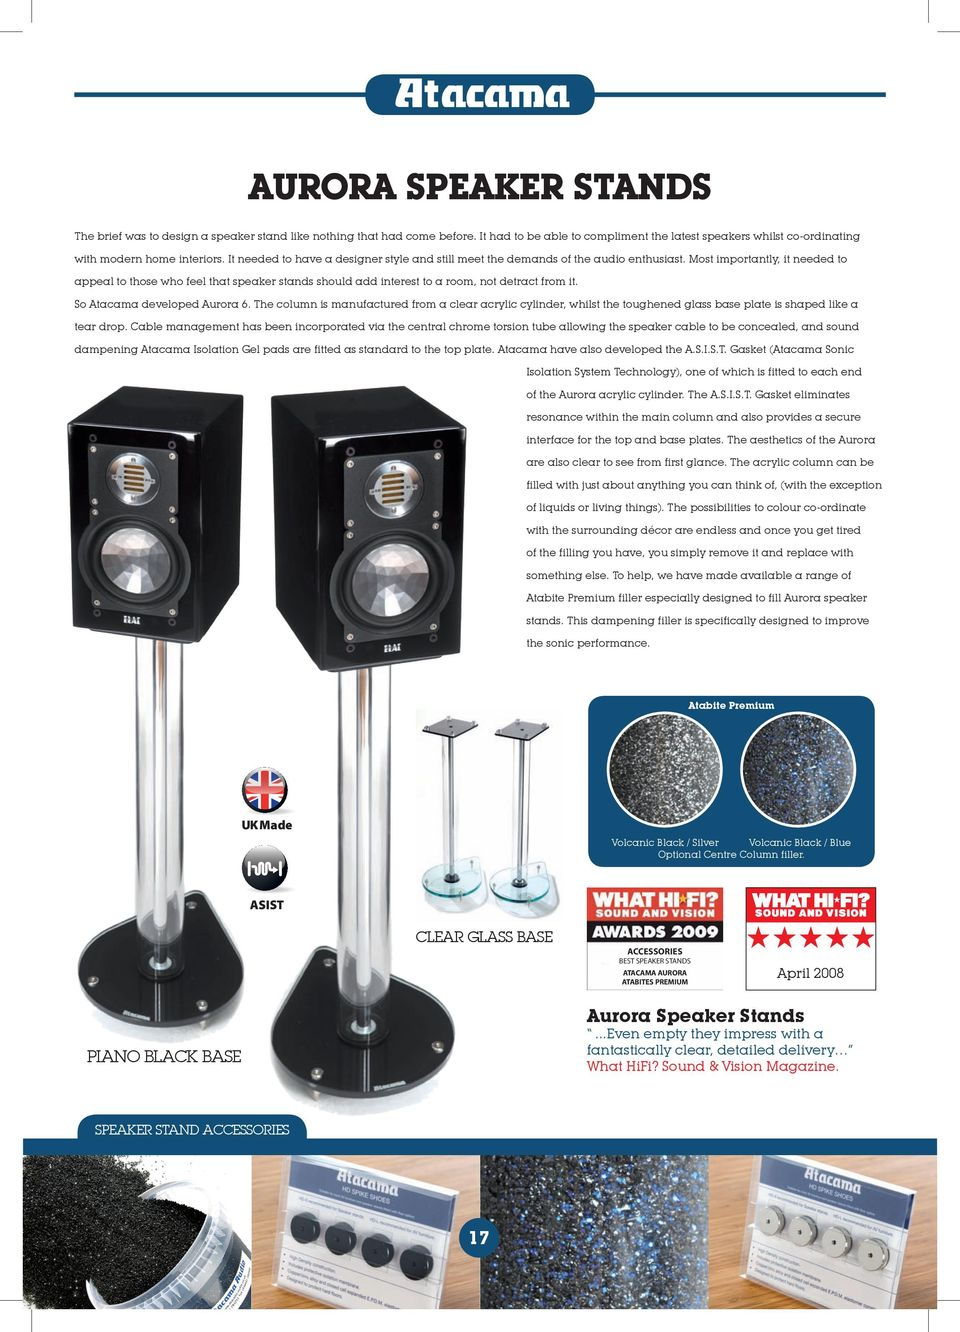 Most importantly, it needed to appeal to those who feel that speaker stands should add interest to a room, not detract from it. So Atacama developed Aurora 6.